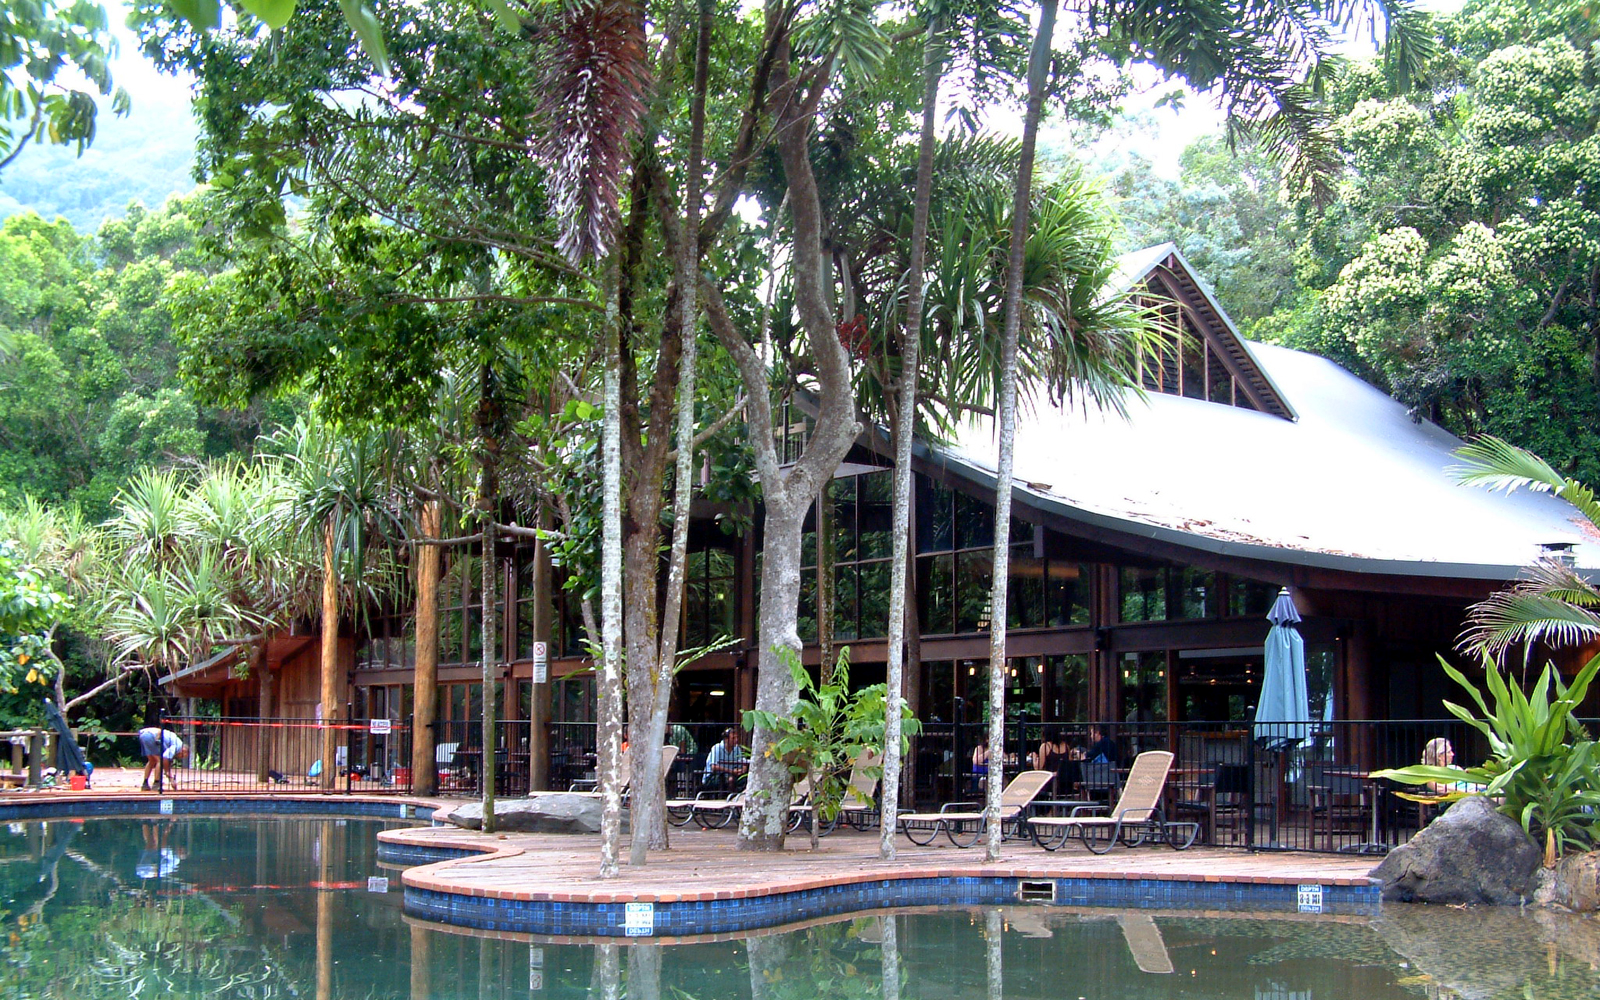 http://upload.wikimedia.org/wikipedia/commons/1/1c/Coconut_Beach_Resort_20051024.png